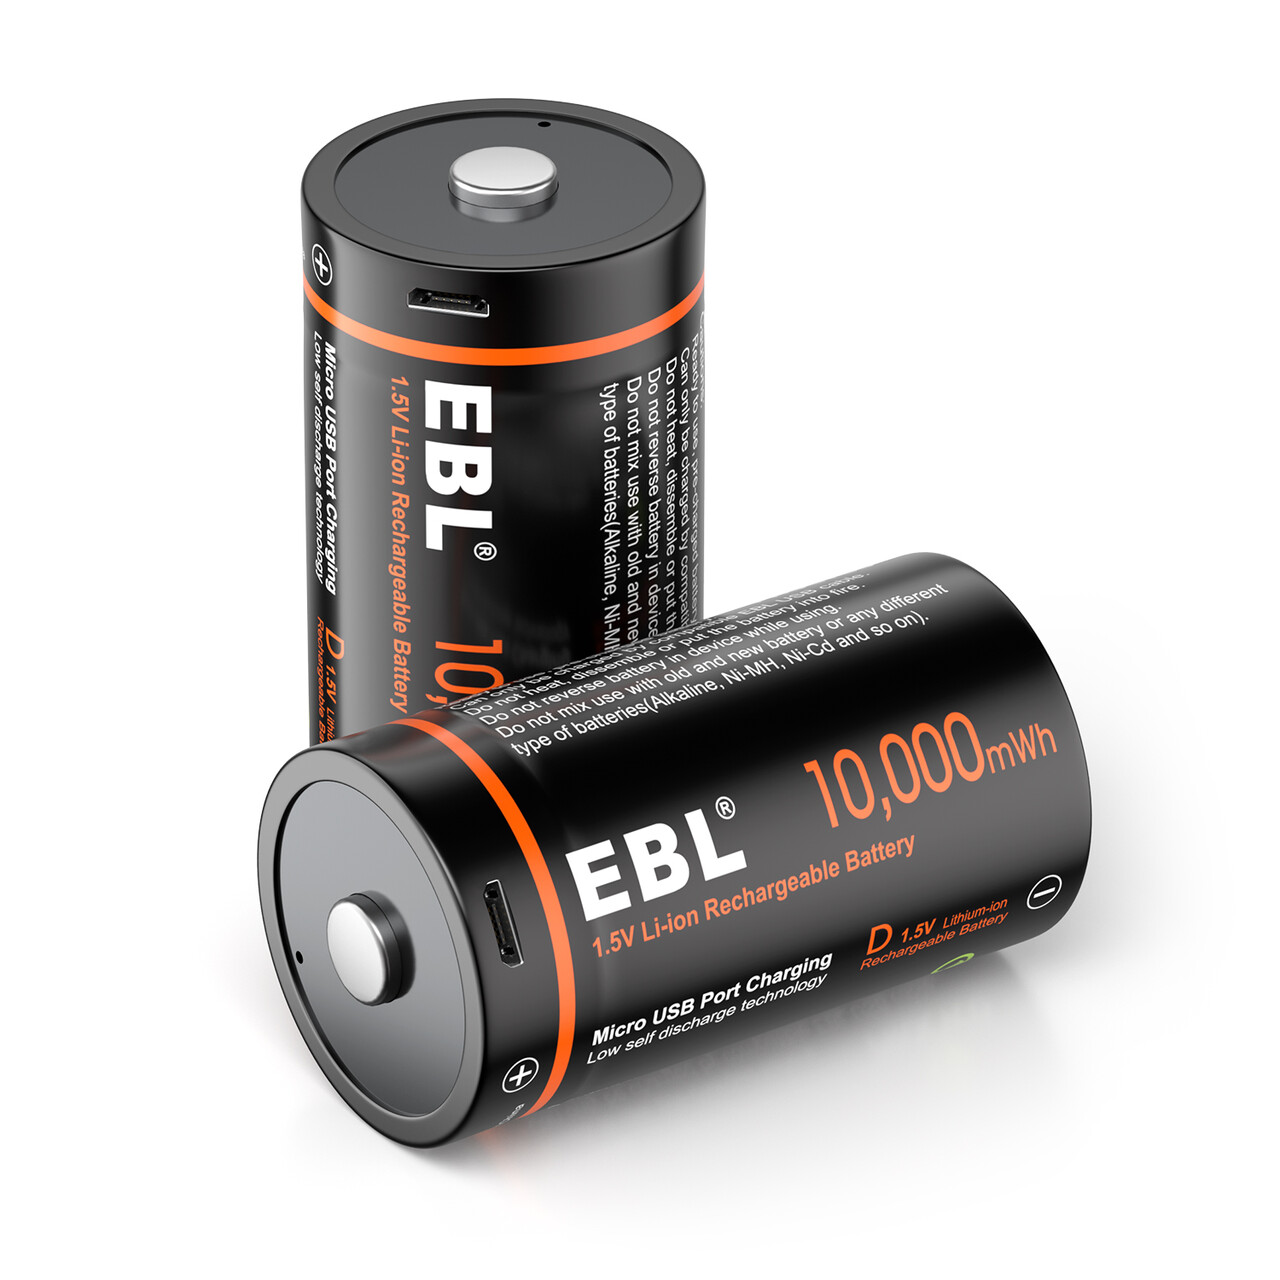 EBL 2020 Hot sales 2packs 1.5V <strong>D</strong> size usb rechargeable battery For flashlight with durable battery storage box